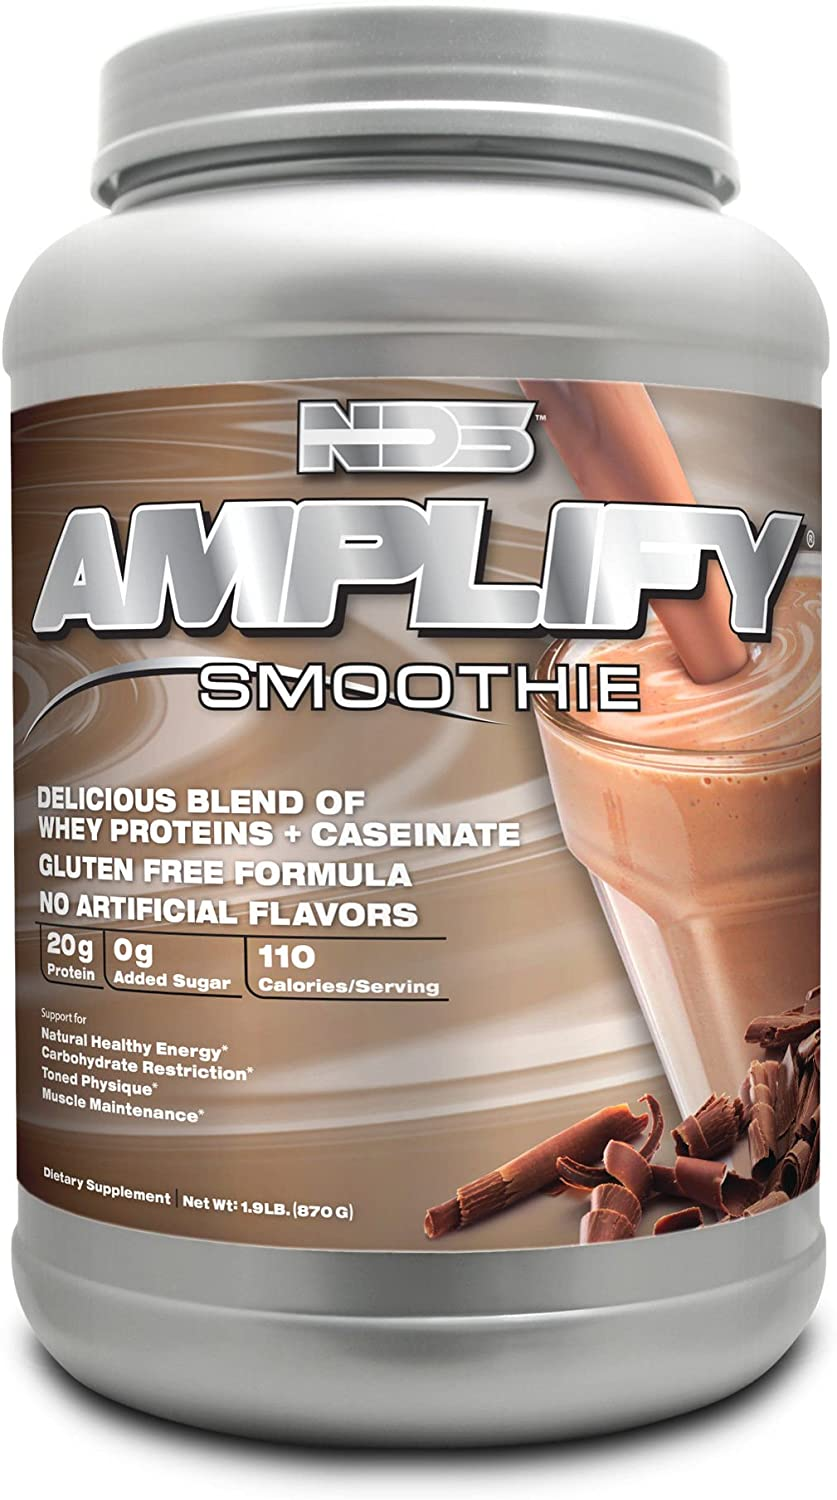 NDS Nutrition Amplify Protein Smoothie with Added Greens for Overall Health – Whey Protein and Naturally Occurring Amino Acids – Build Lean Muscle, More Strength, Lose Fat – Chocolate – 30 Servings